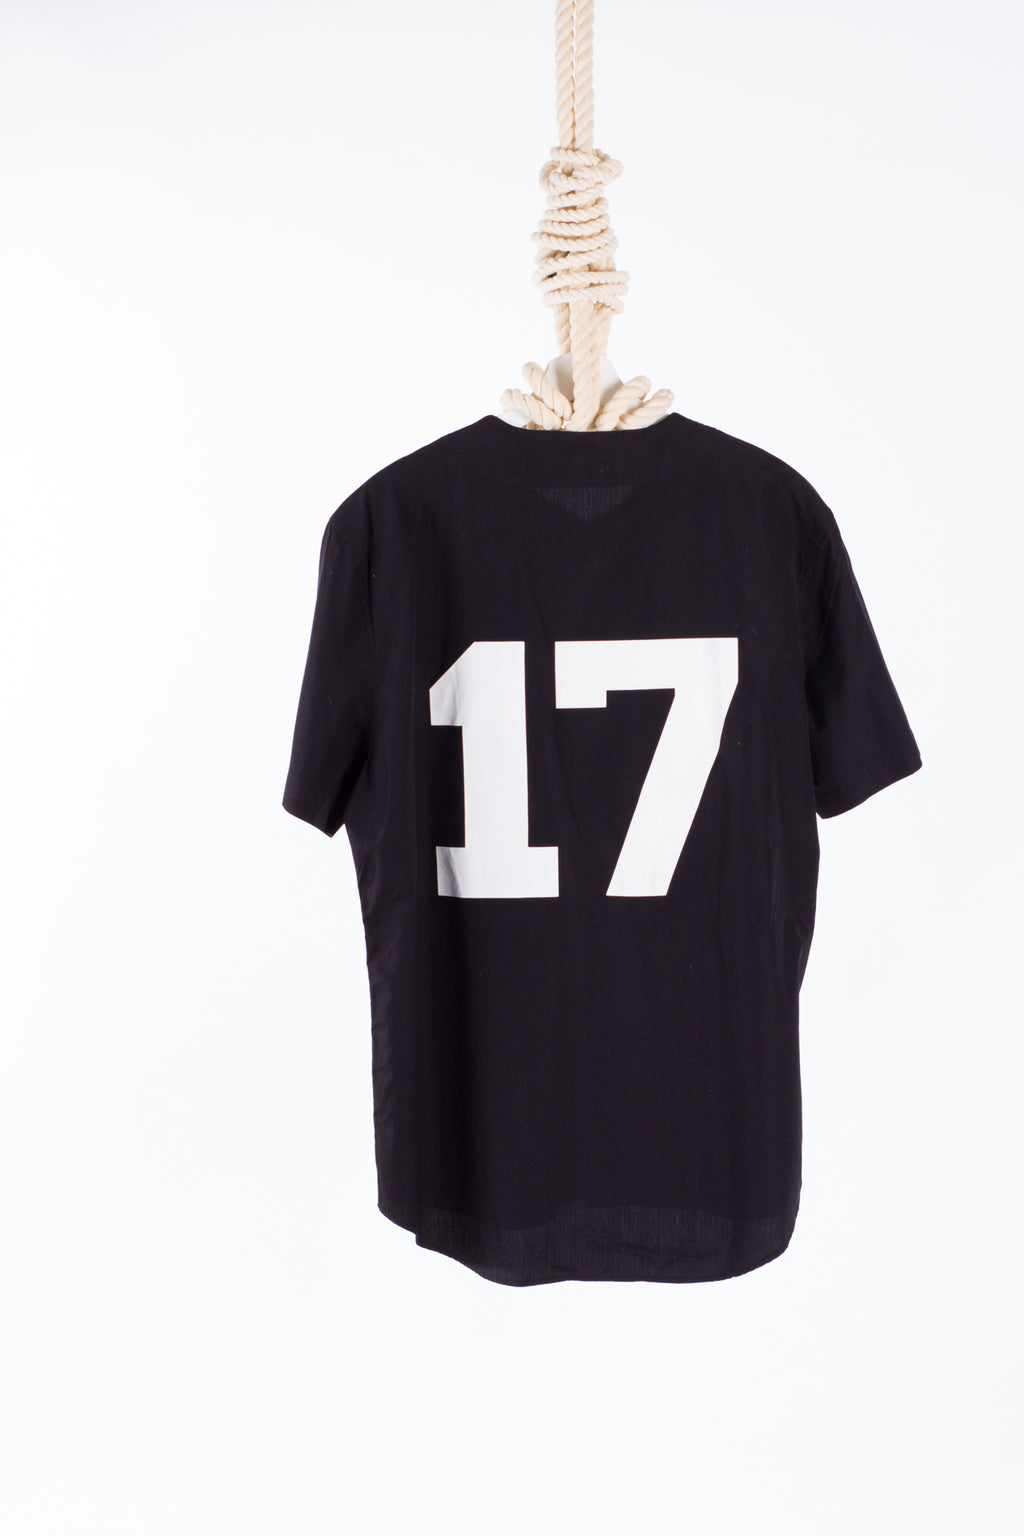 "Givenchy Men's Black ""17"" Cotton Baseball Shirt"